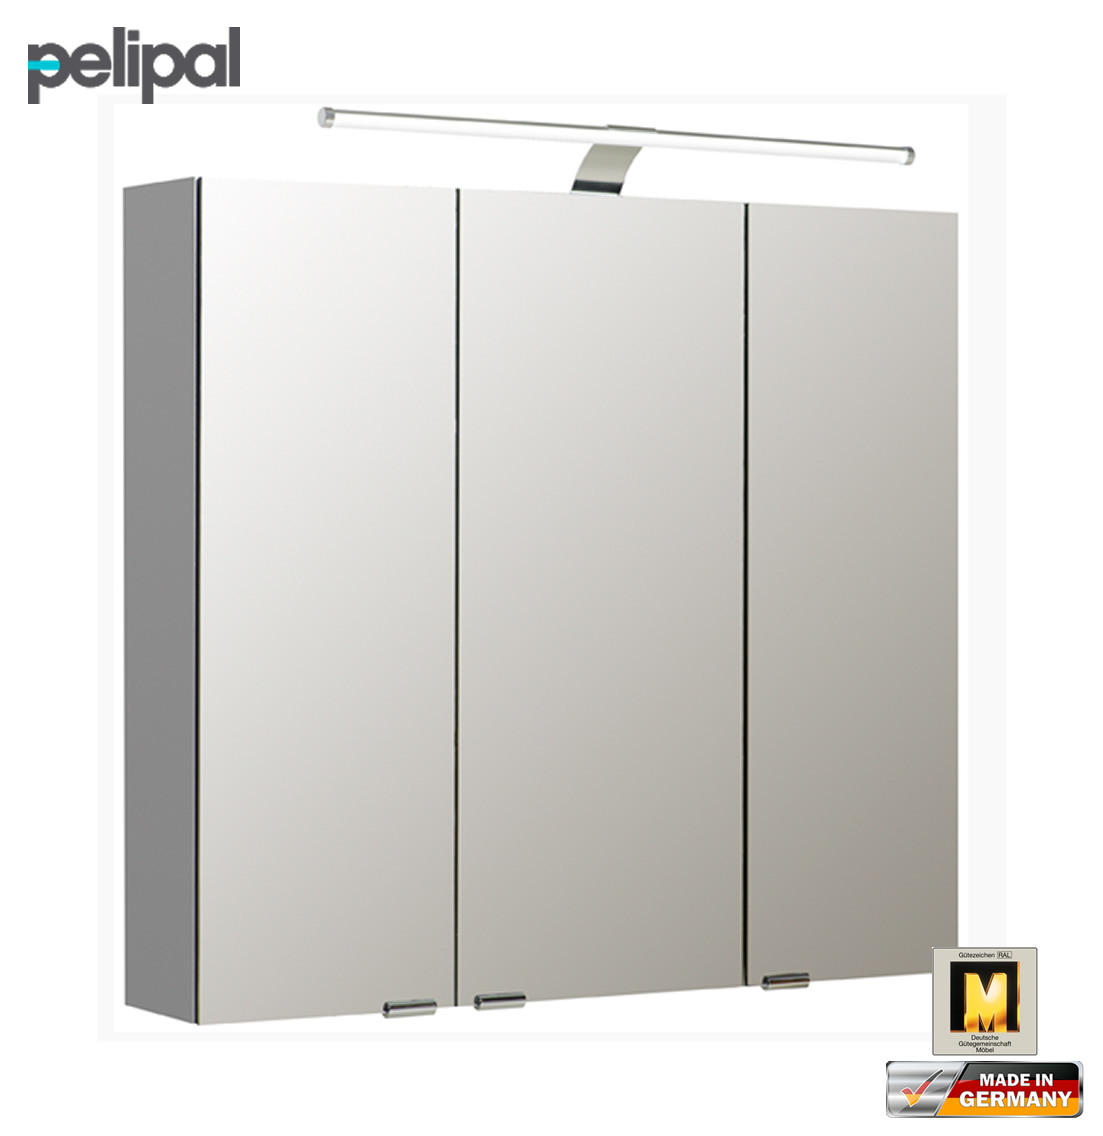 pelipal neutraler spiegelschrank 80 cm mit led. Black Bedroom Furniture Sets. Home Design Ideas